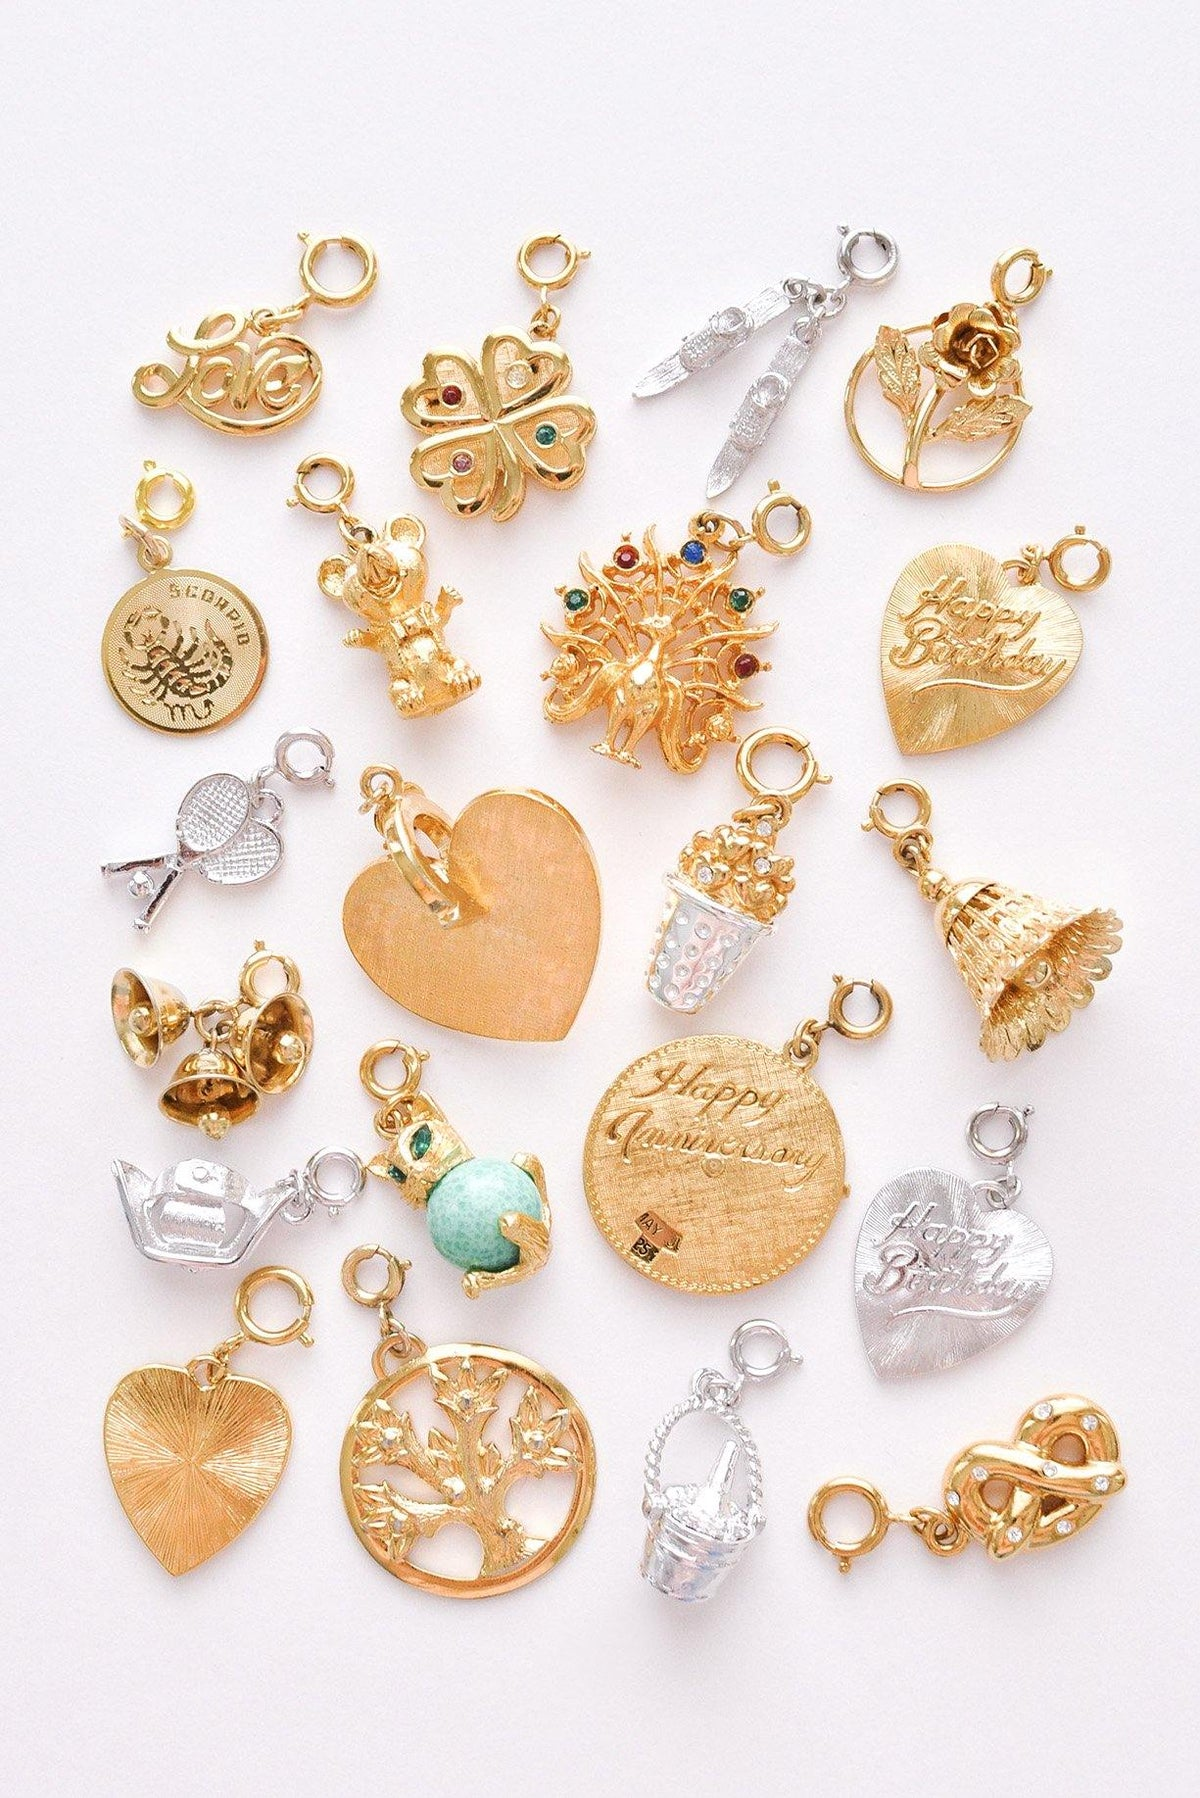 Vintage Monet Charms from Sweet & Spark.